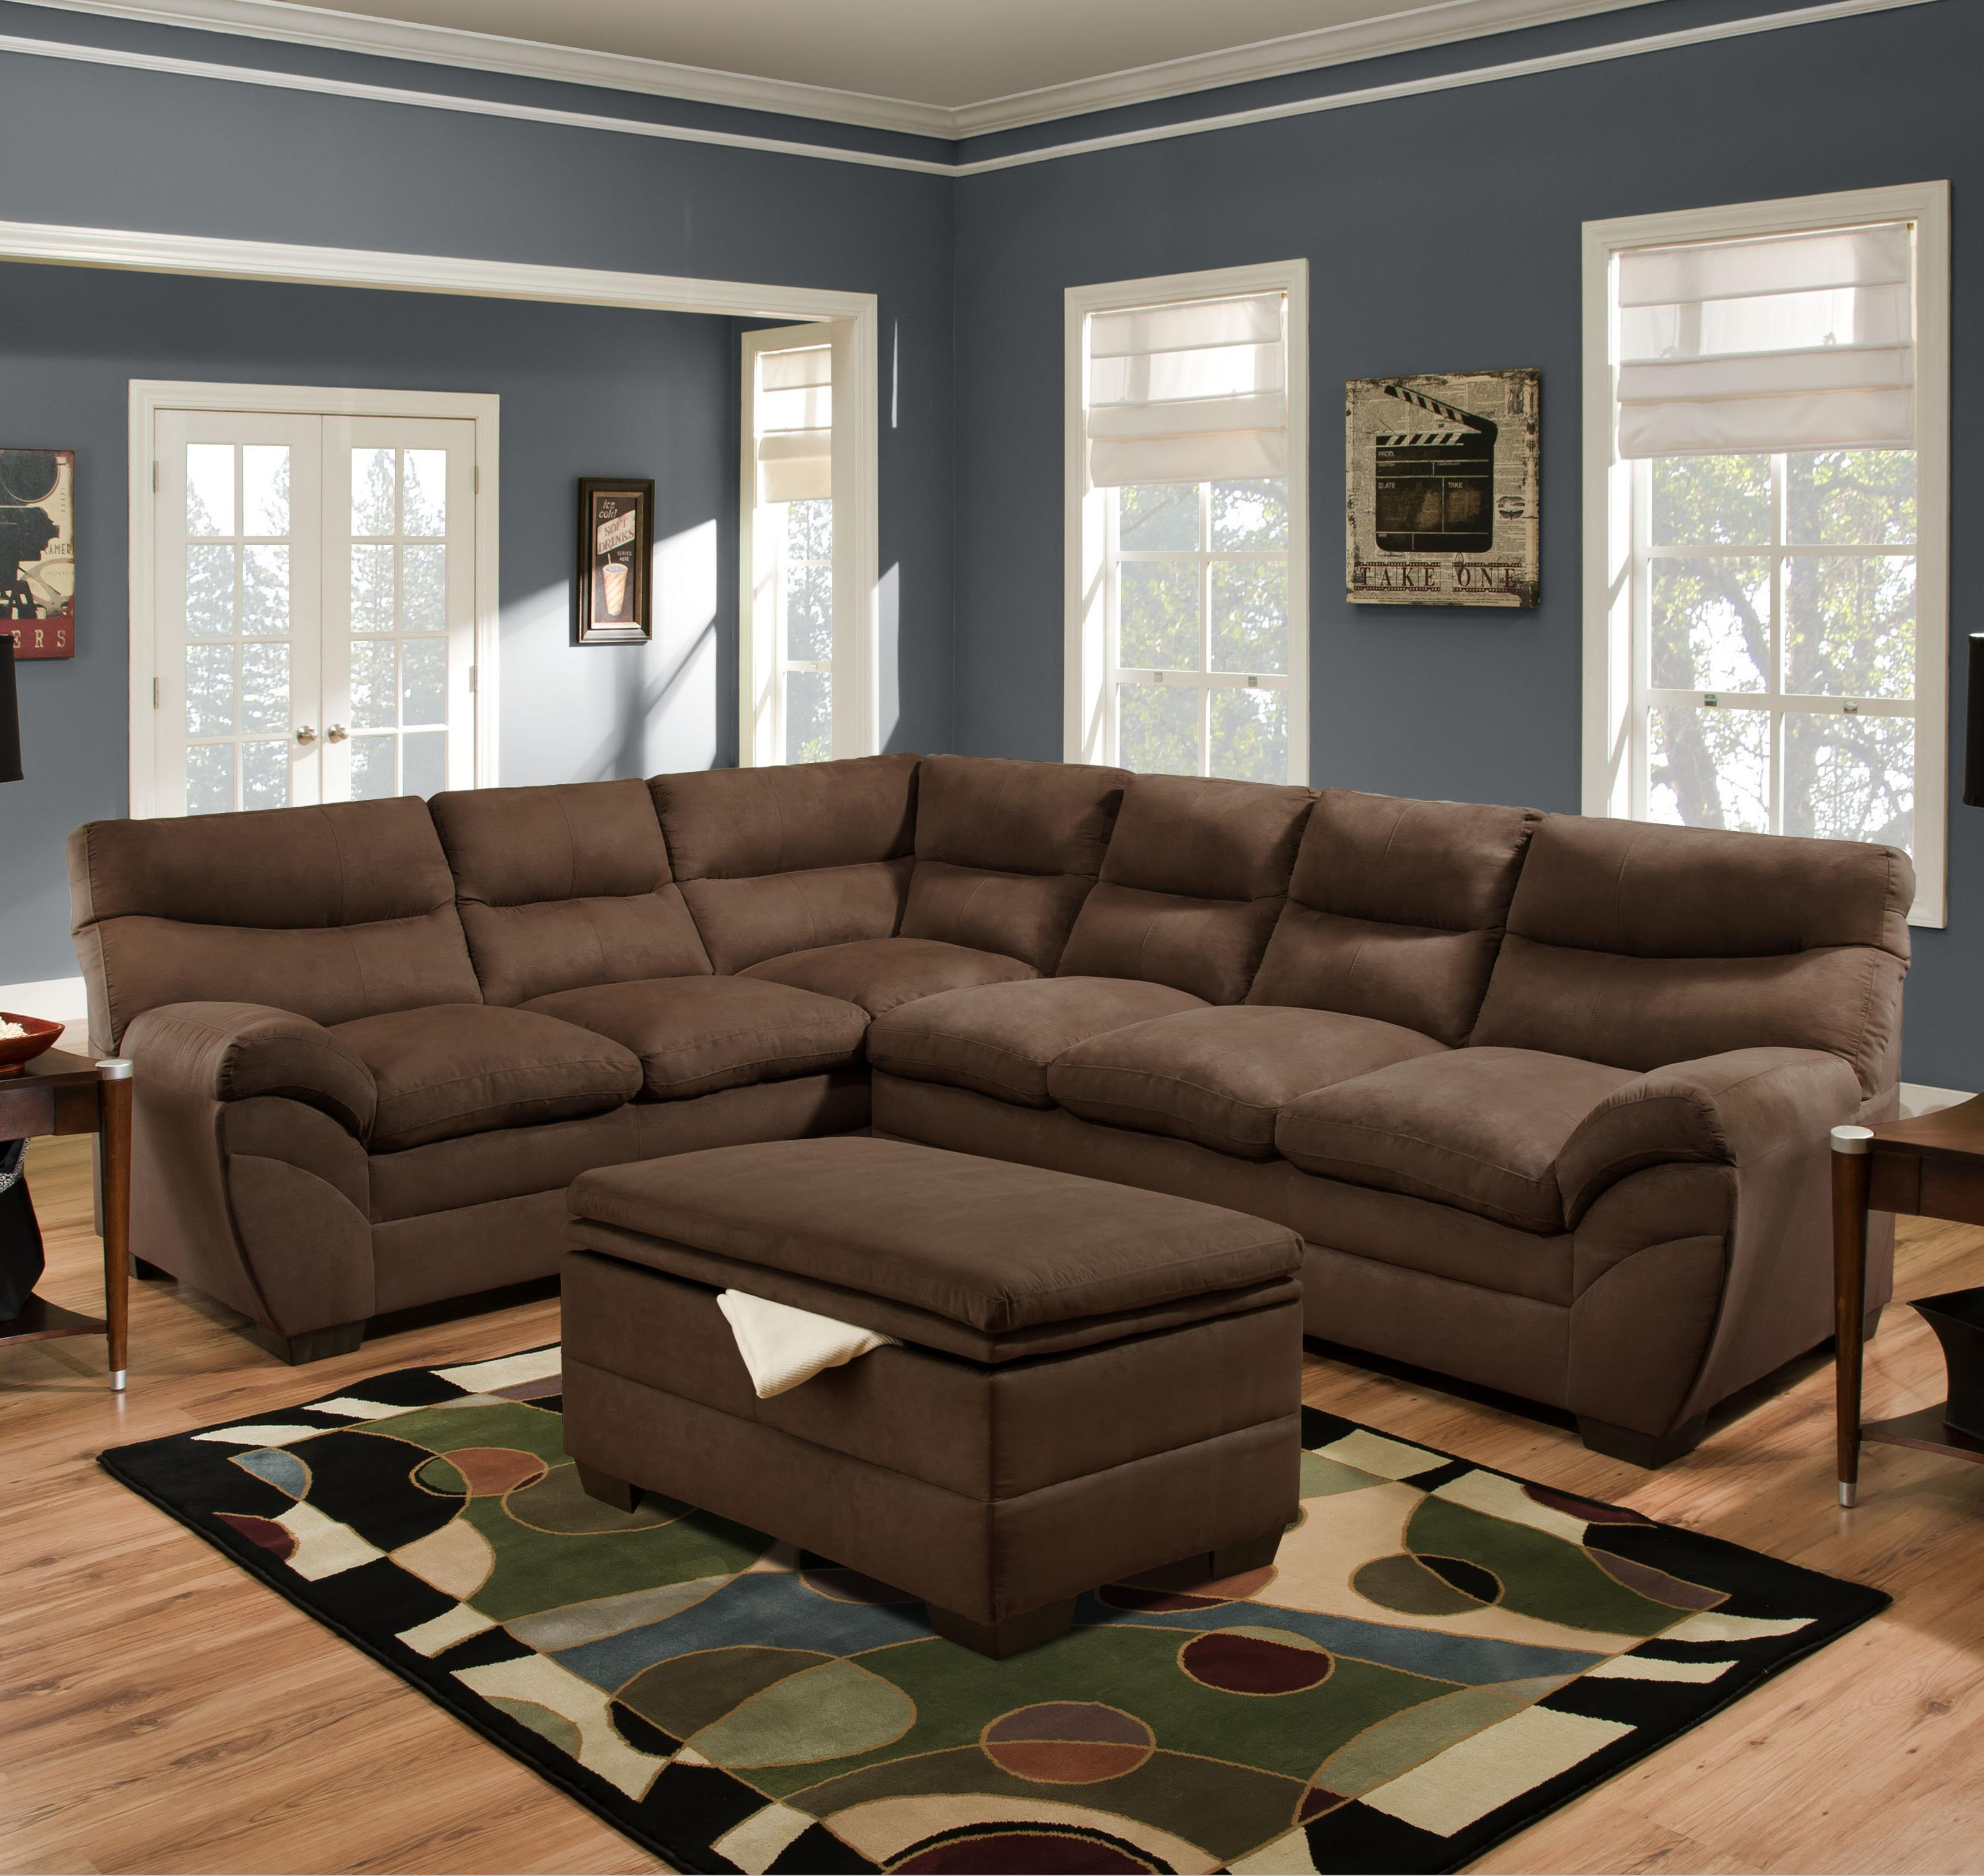 Simmons upholstery 9515 casual sectional sofa dunk for Casual couch